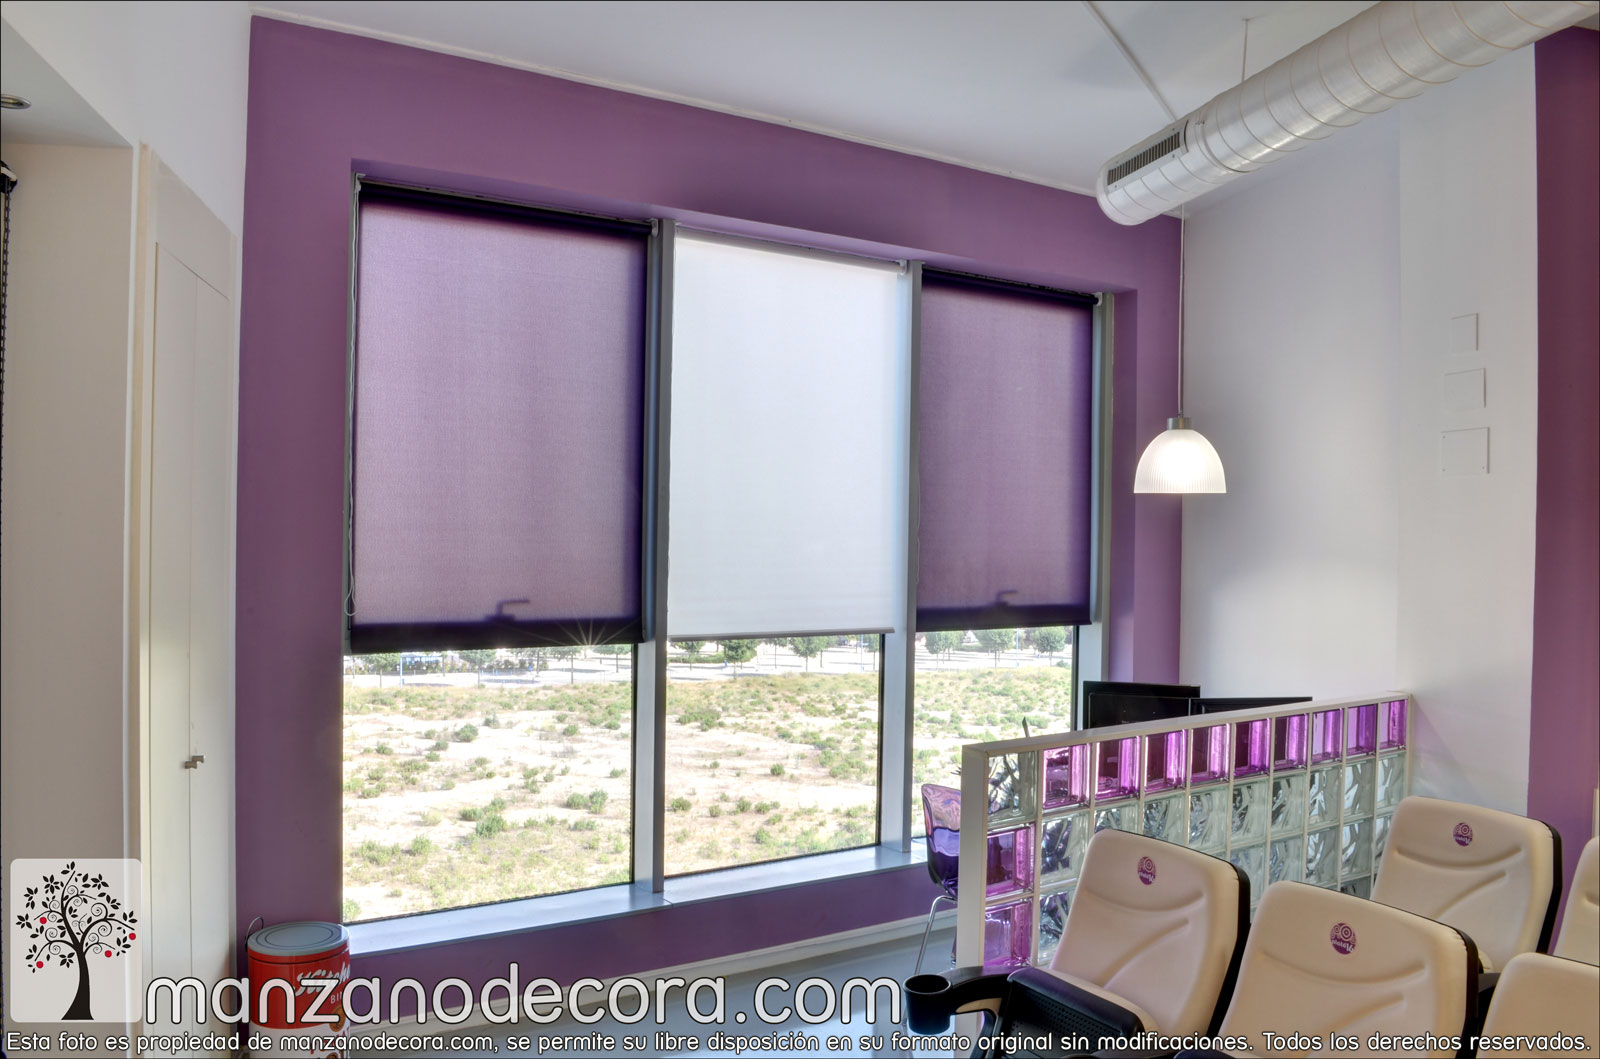 Estores enrollables cortinas manzanodecora - Cortinas estores enrollables ...